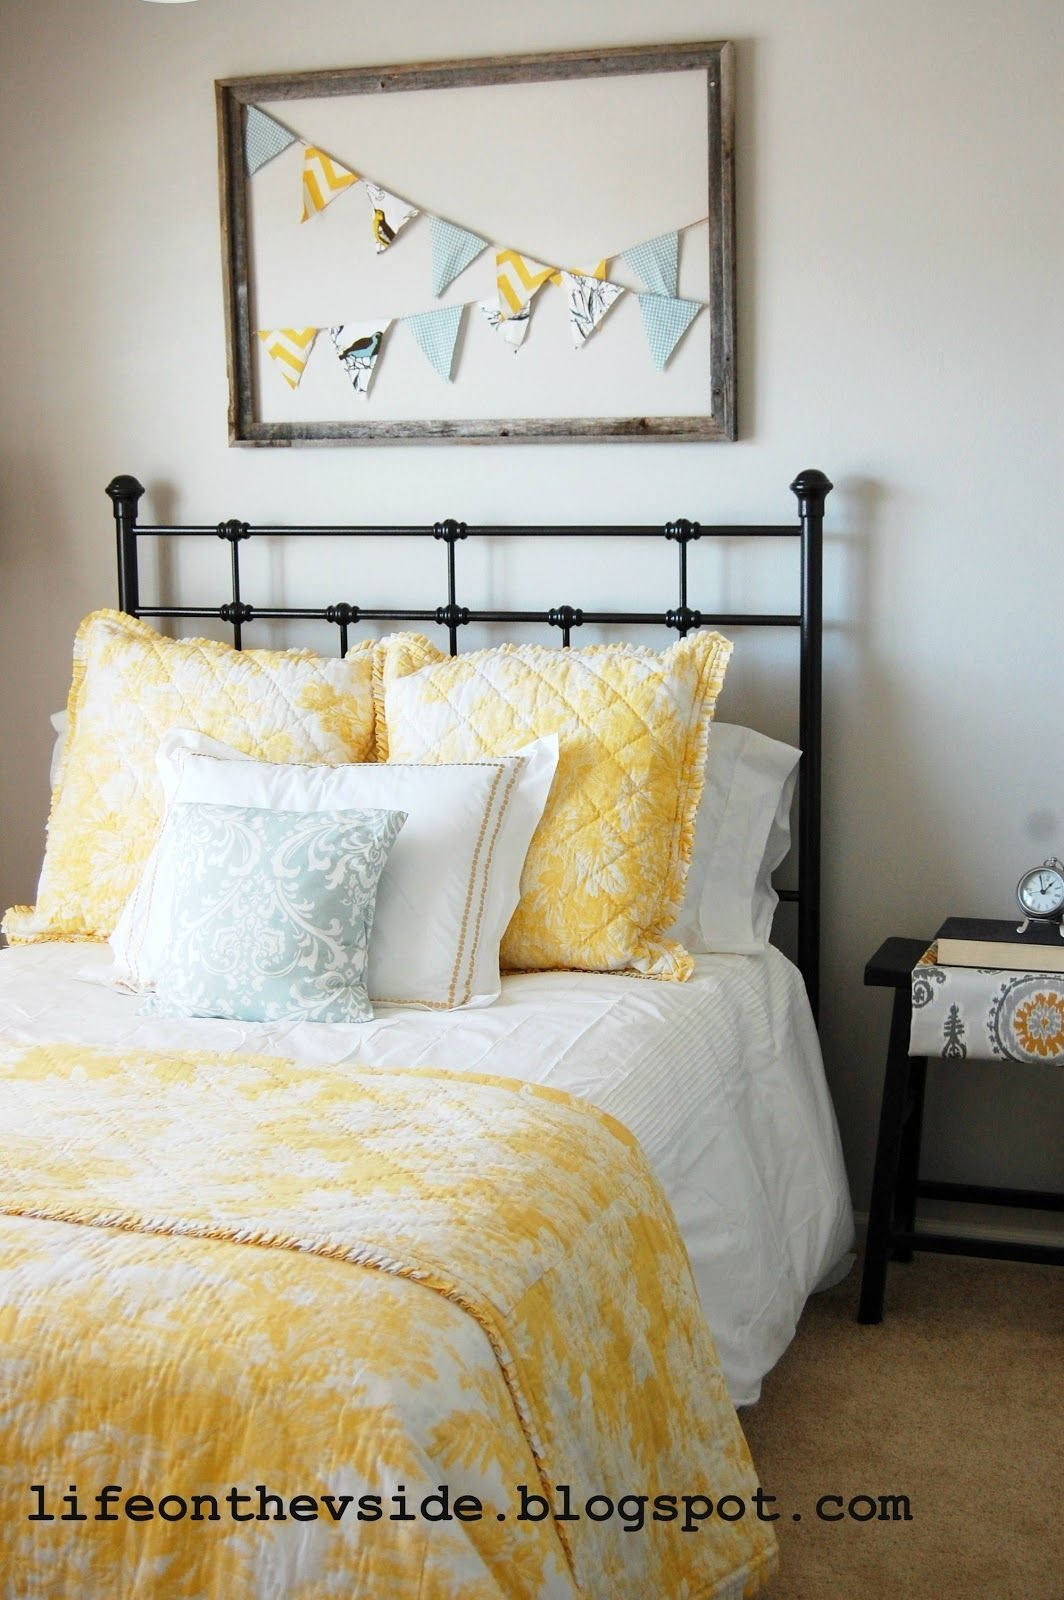 Best Sherwin Williams Agreeable Gray Bedroom The Bedding Would With Pictures